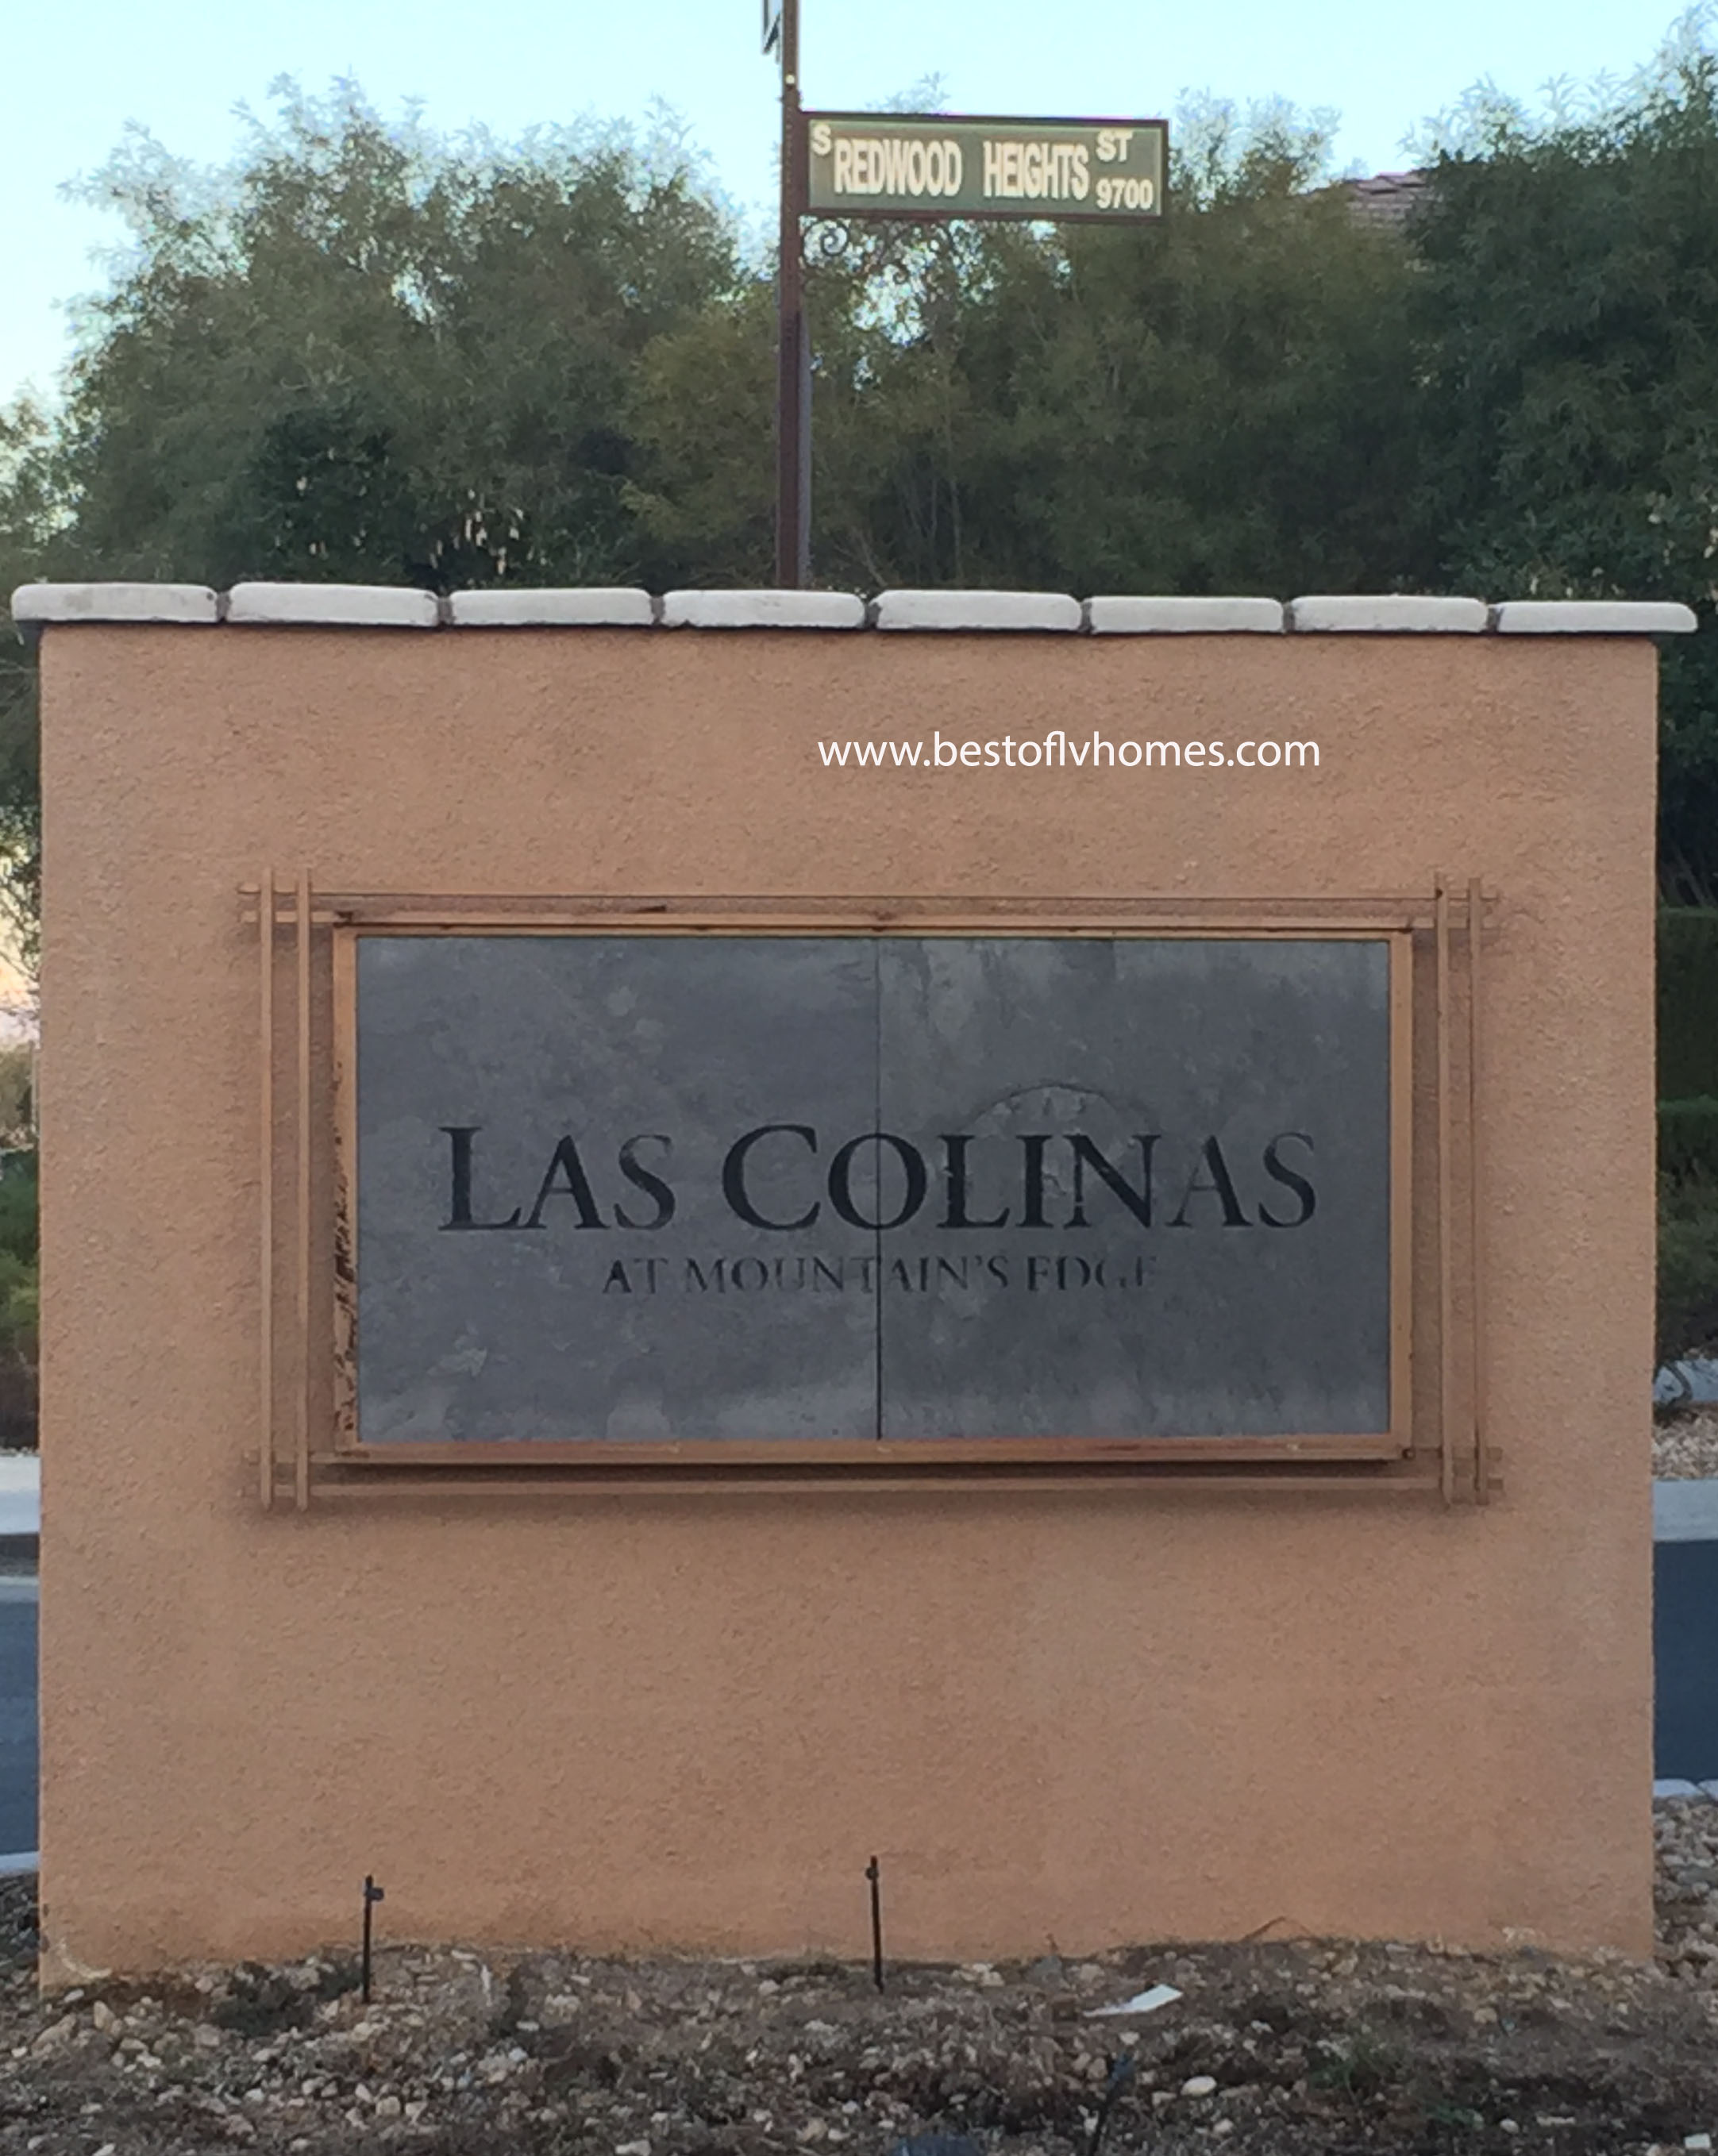 Las Colinas Mountains Edge Las Vegas Real Estate